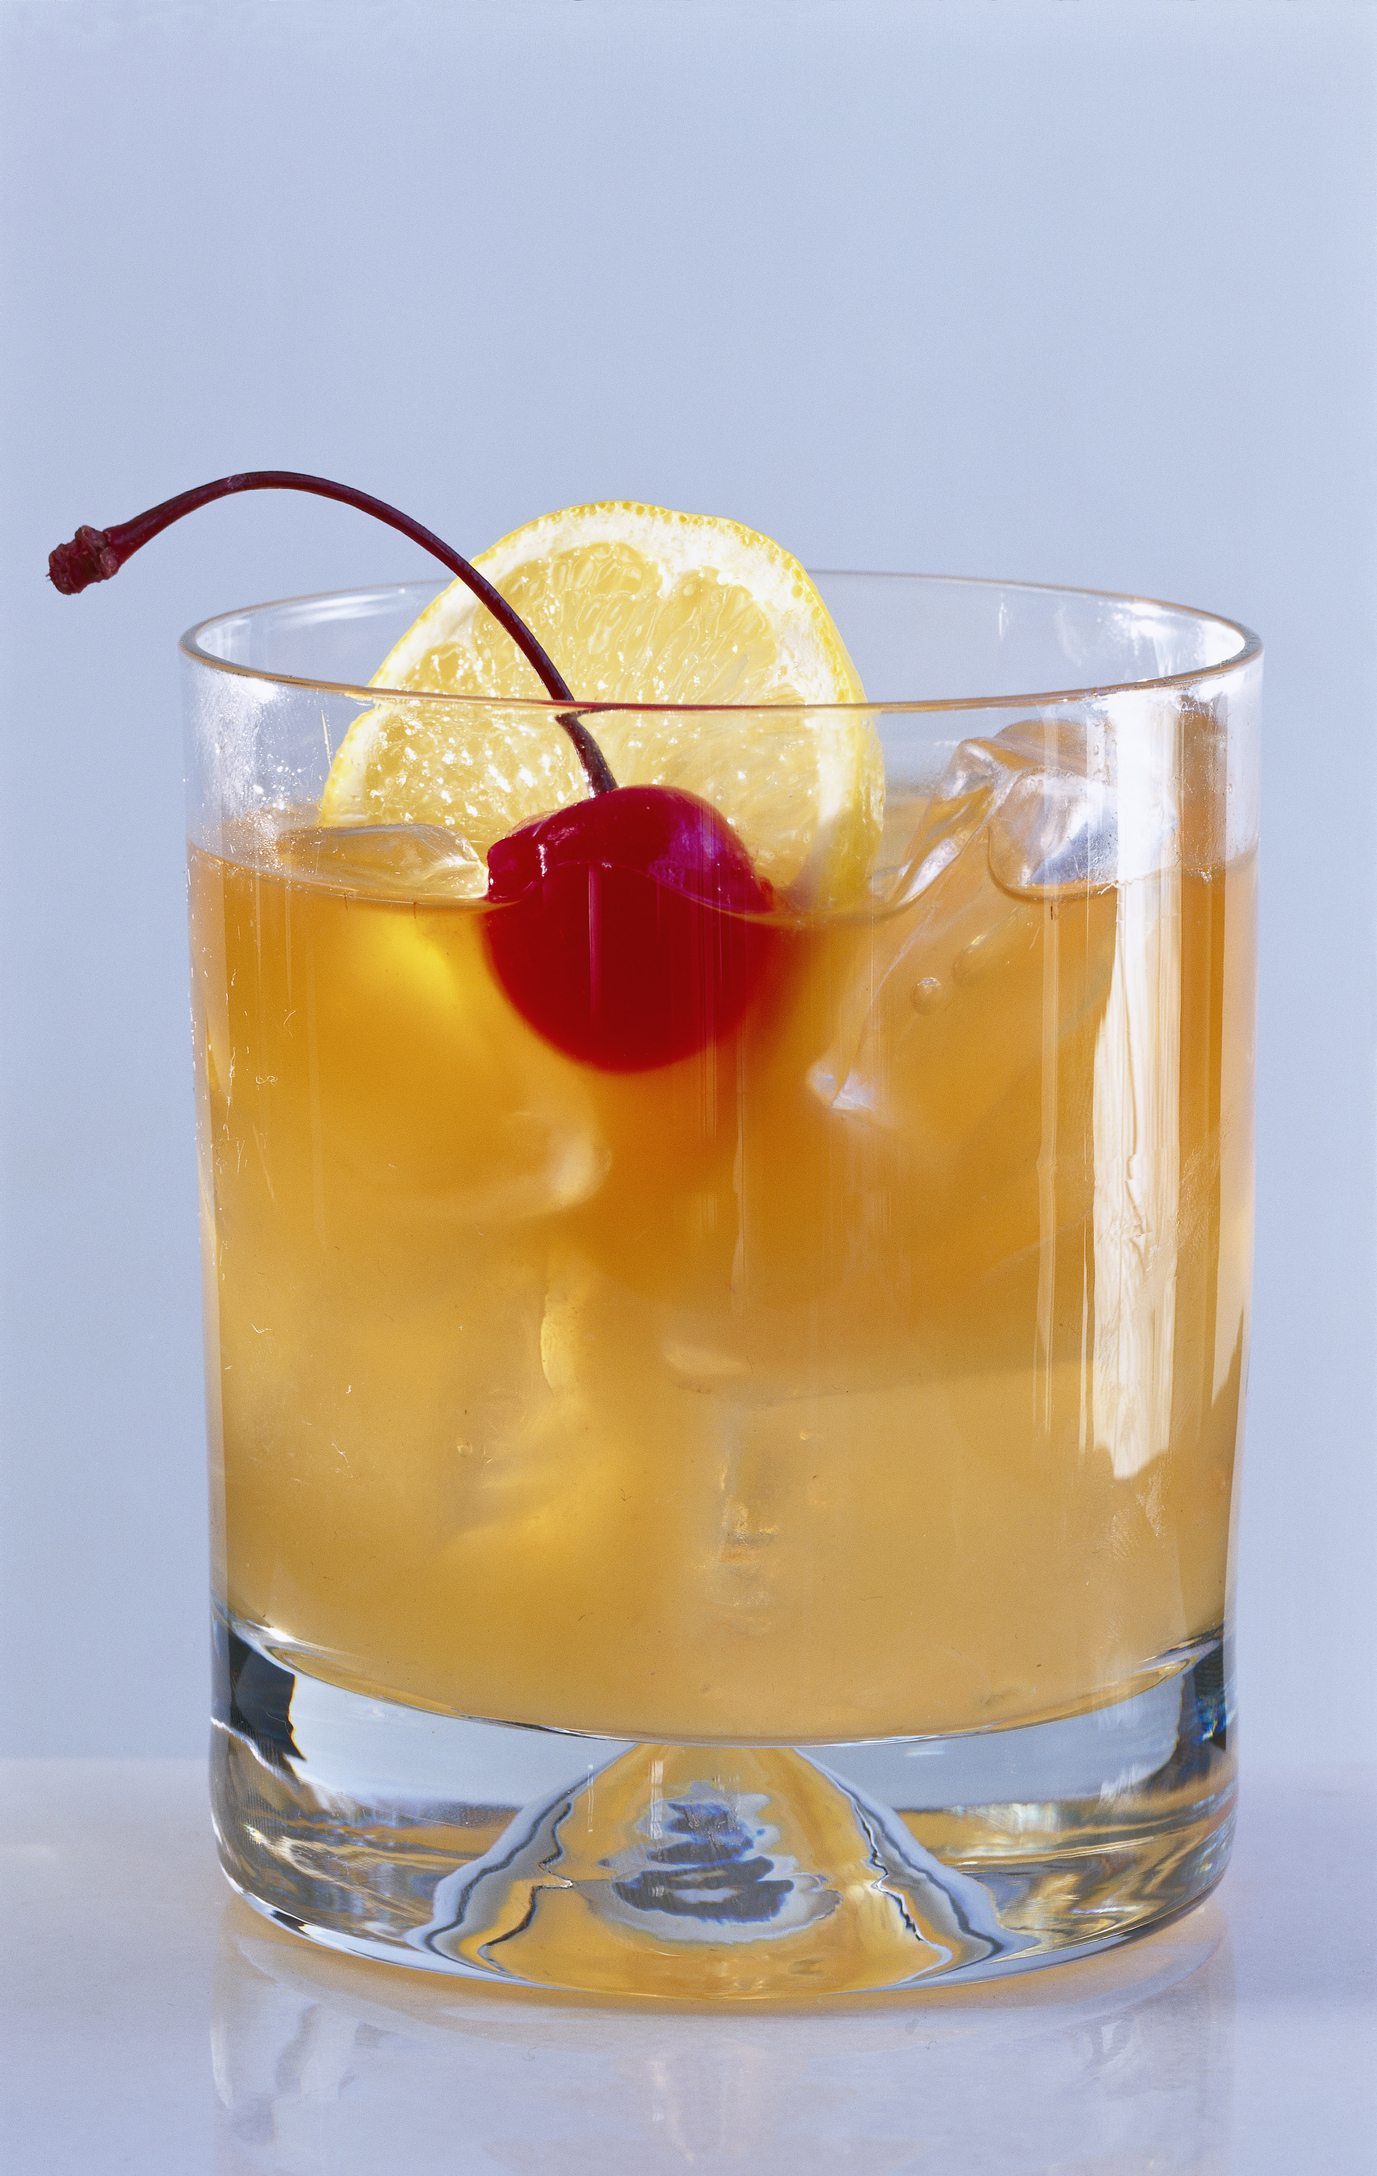 5. Whiskey Sour